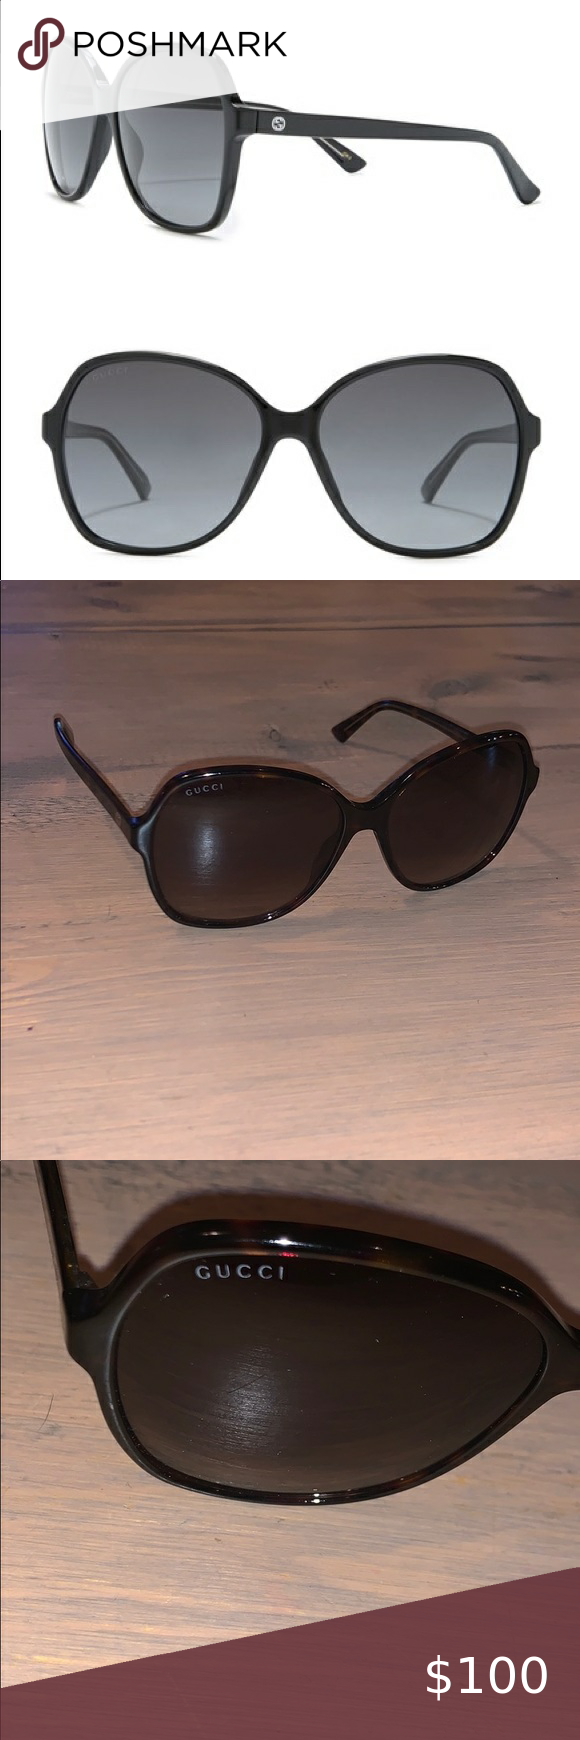 Gucci GG0509S sunglasses brand new Gucci GG0509S sunglasses brand new never worn stock photo shows black but they are brown . Never worn . Gucci Accessories Sunglasses